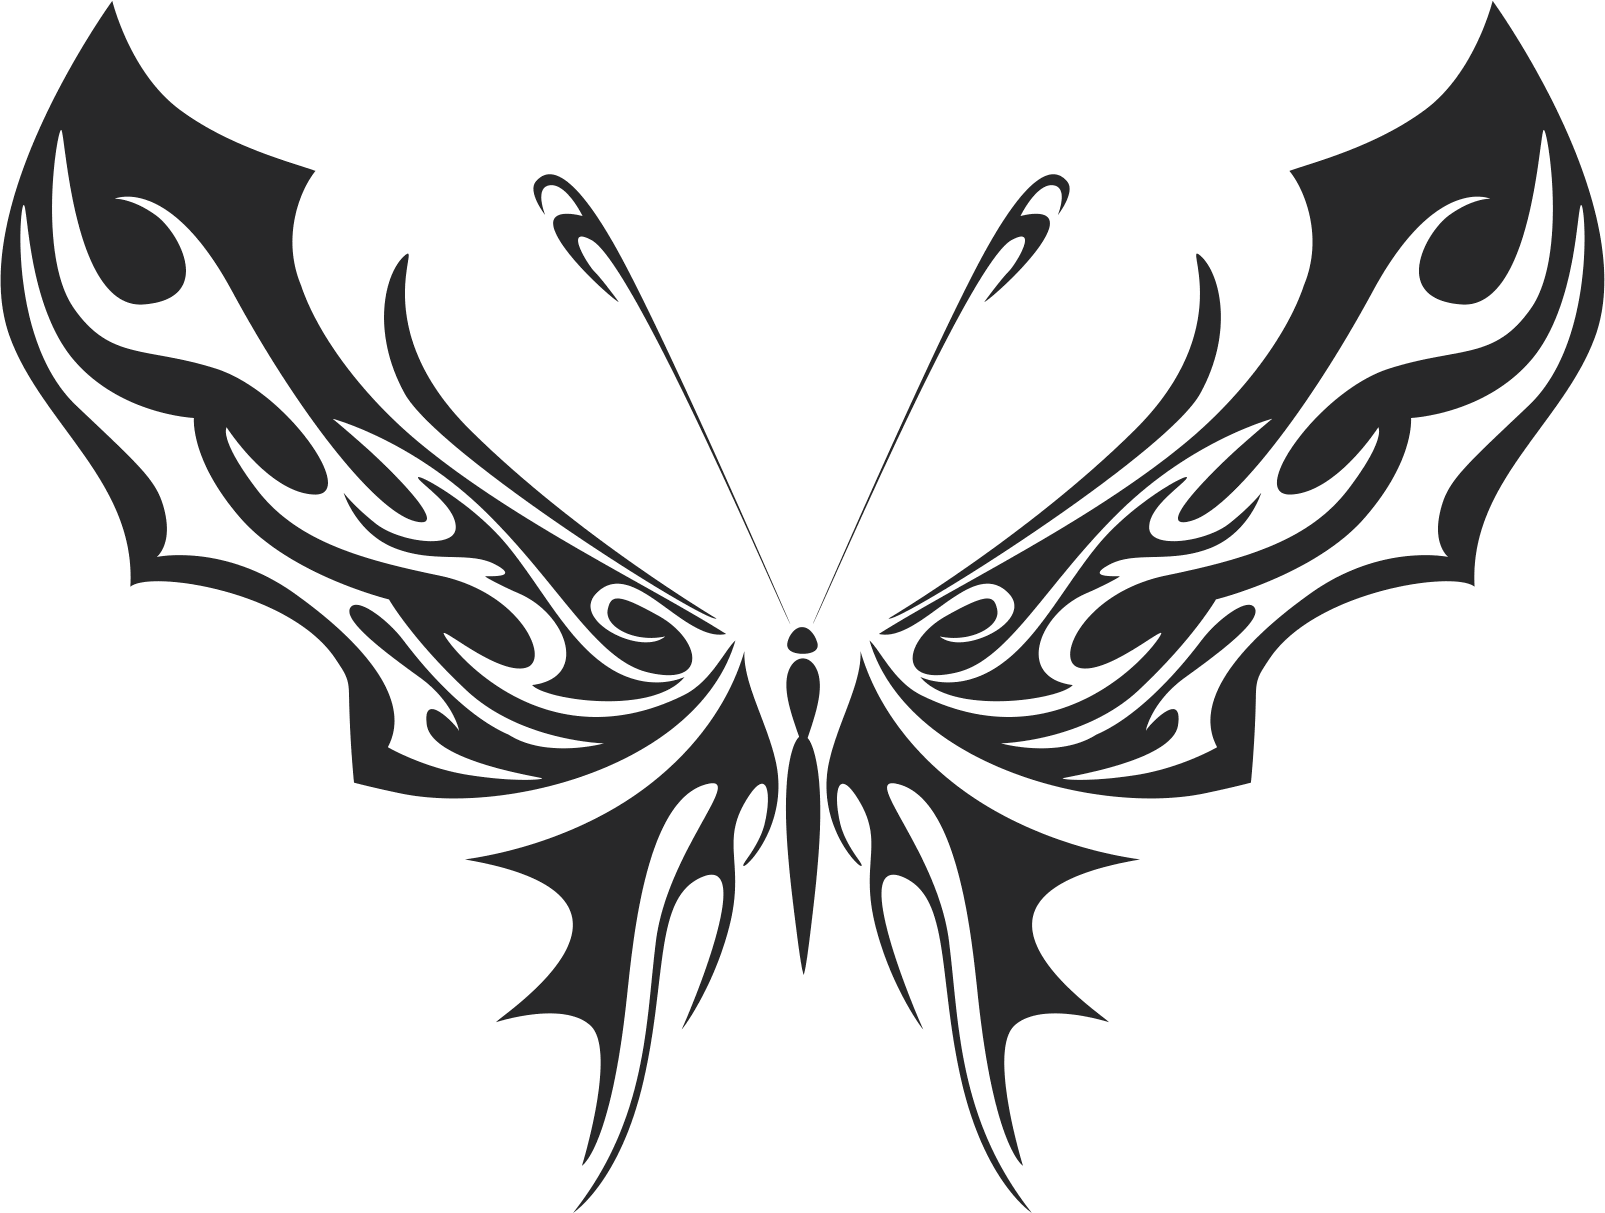 Butterfly Silhouette 035 Free CDR Vectors Art